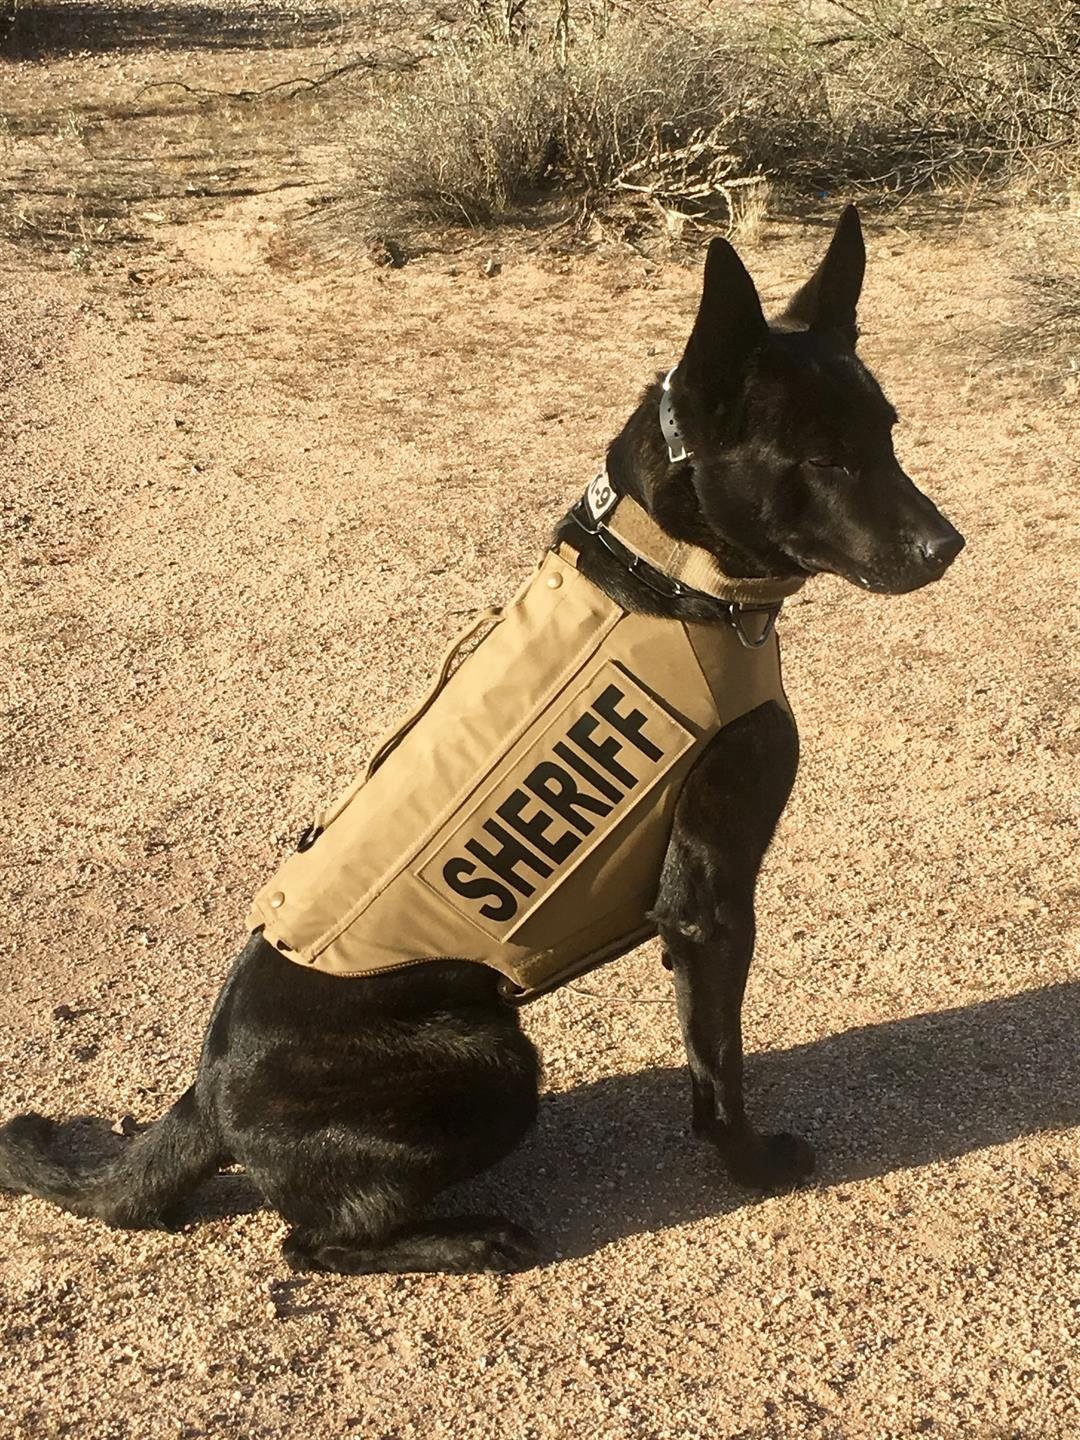 Vested Interest in K9s has a goal to provide bullet- and stab-protective vests to dogs of law enforcement and similar agencies across the country. (Source: MCSO)